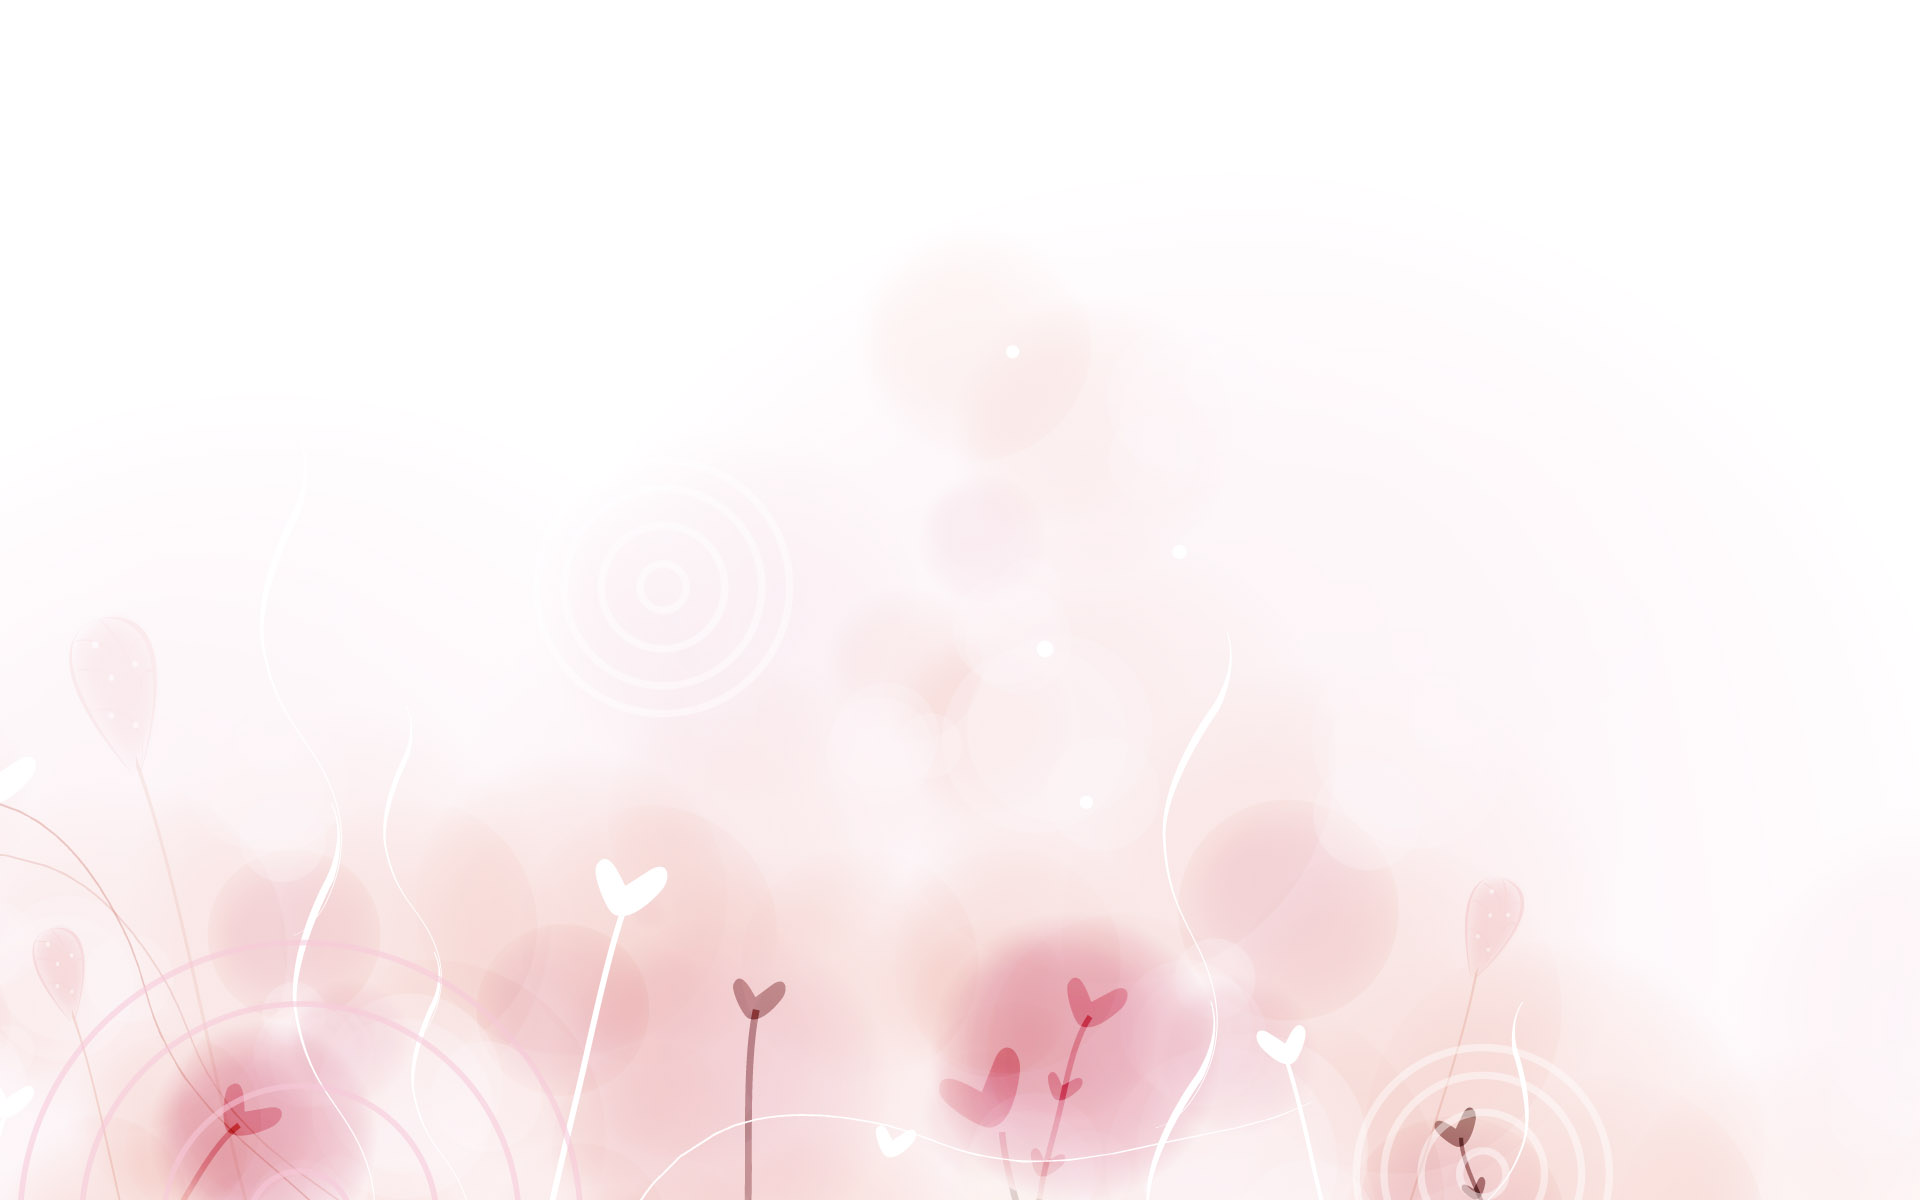 Background color 16459